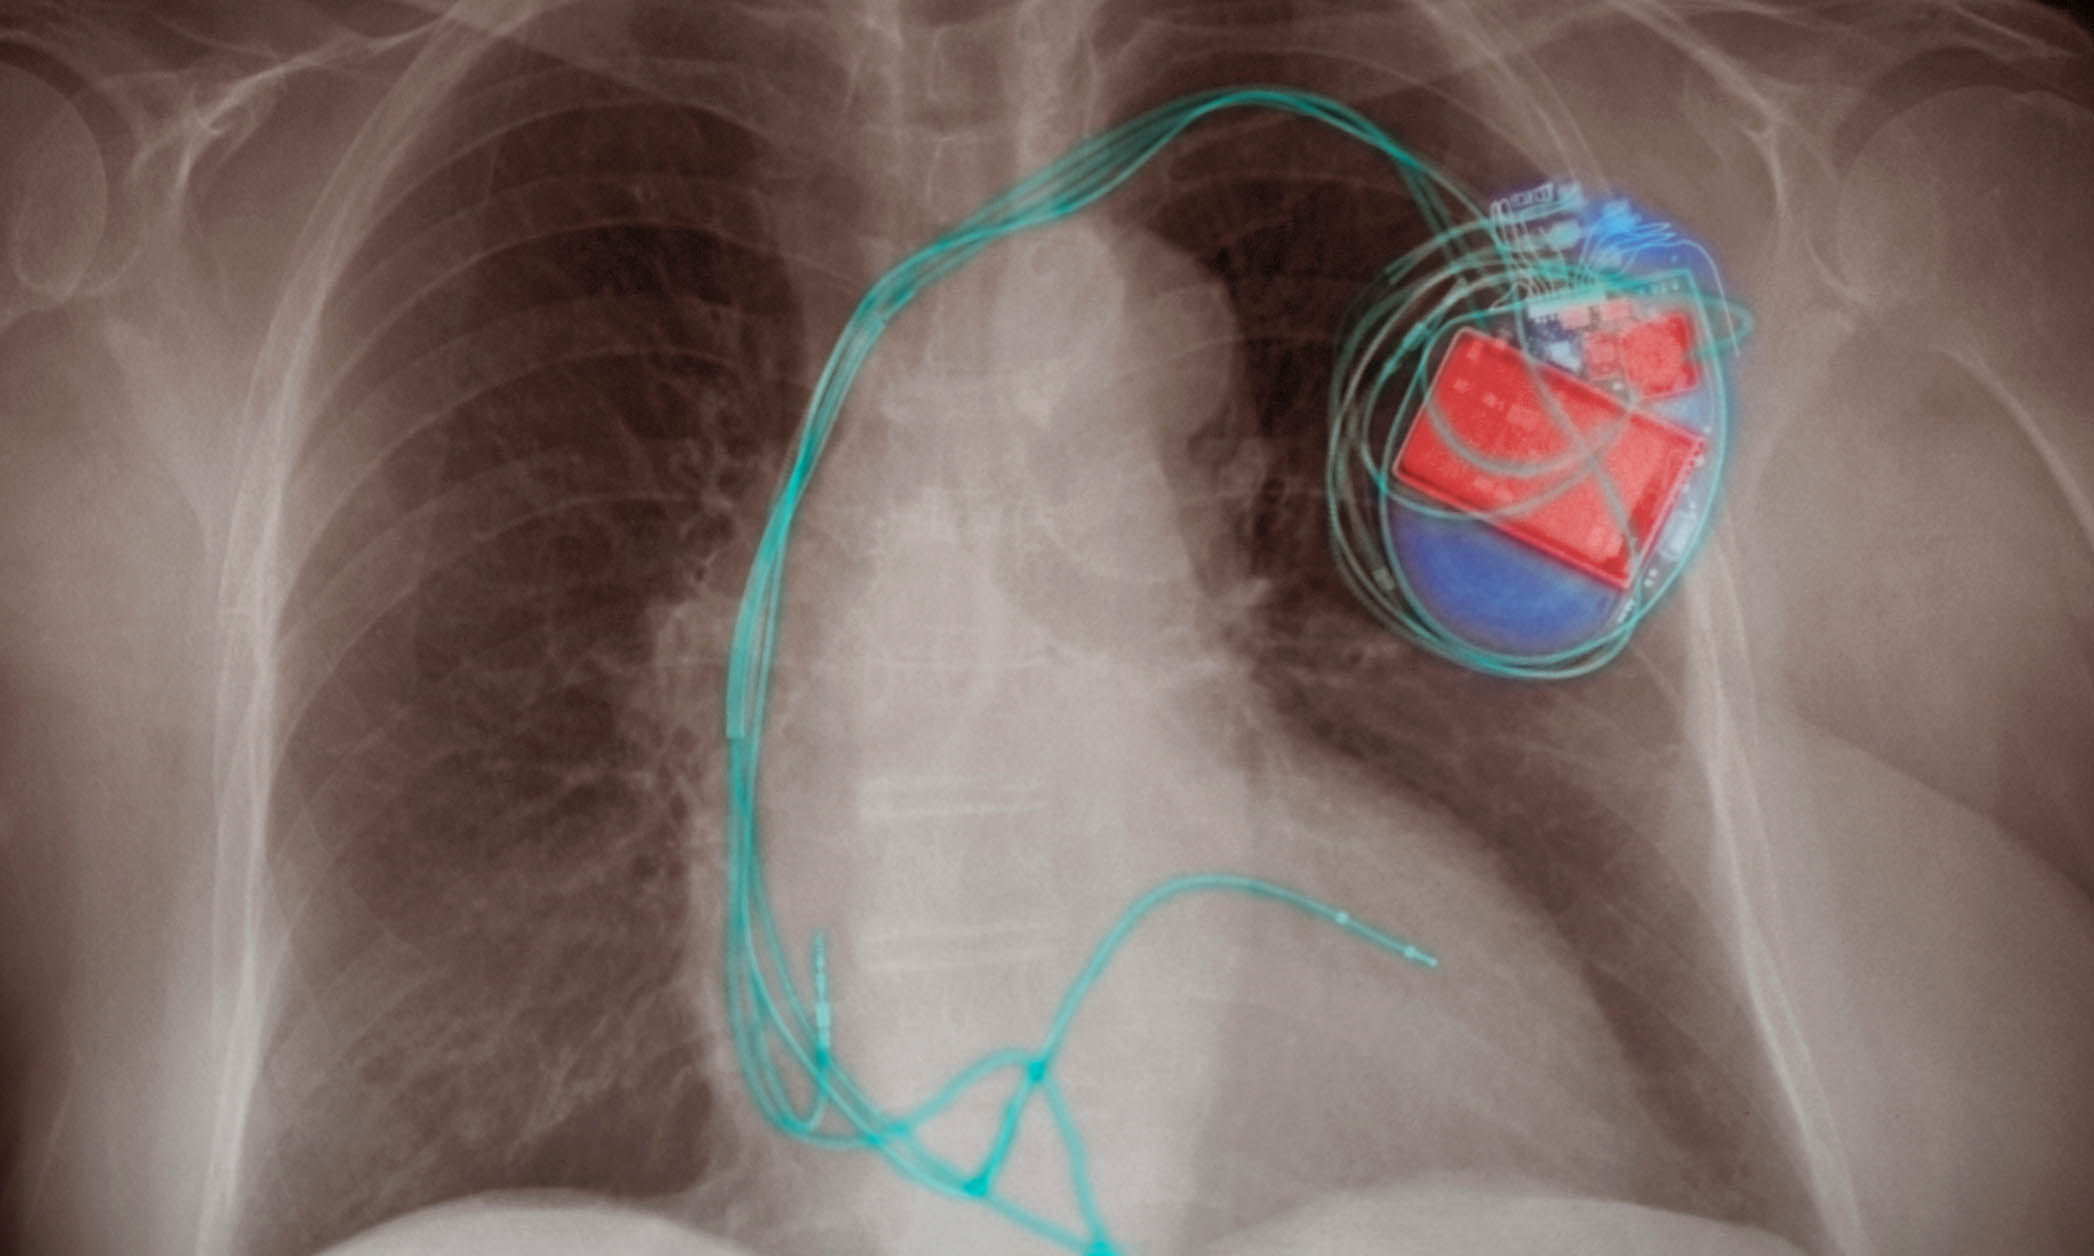 X-ray image showing a pacemaker and a patient's chest